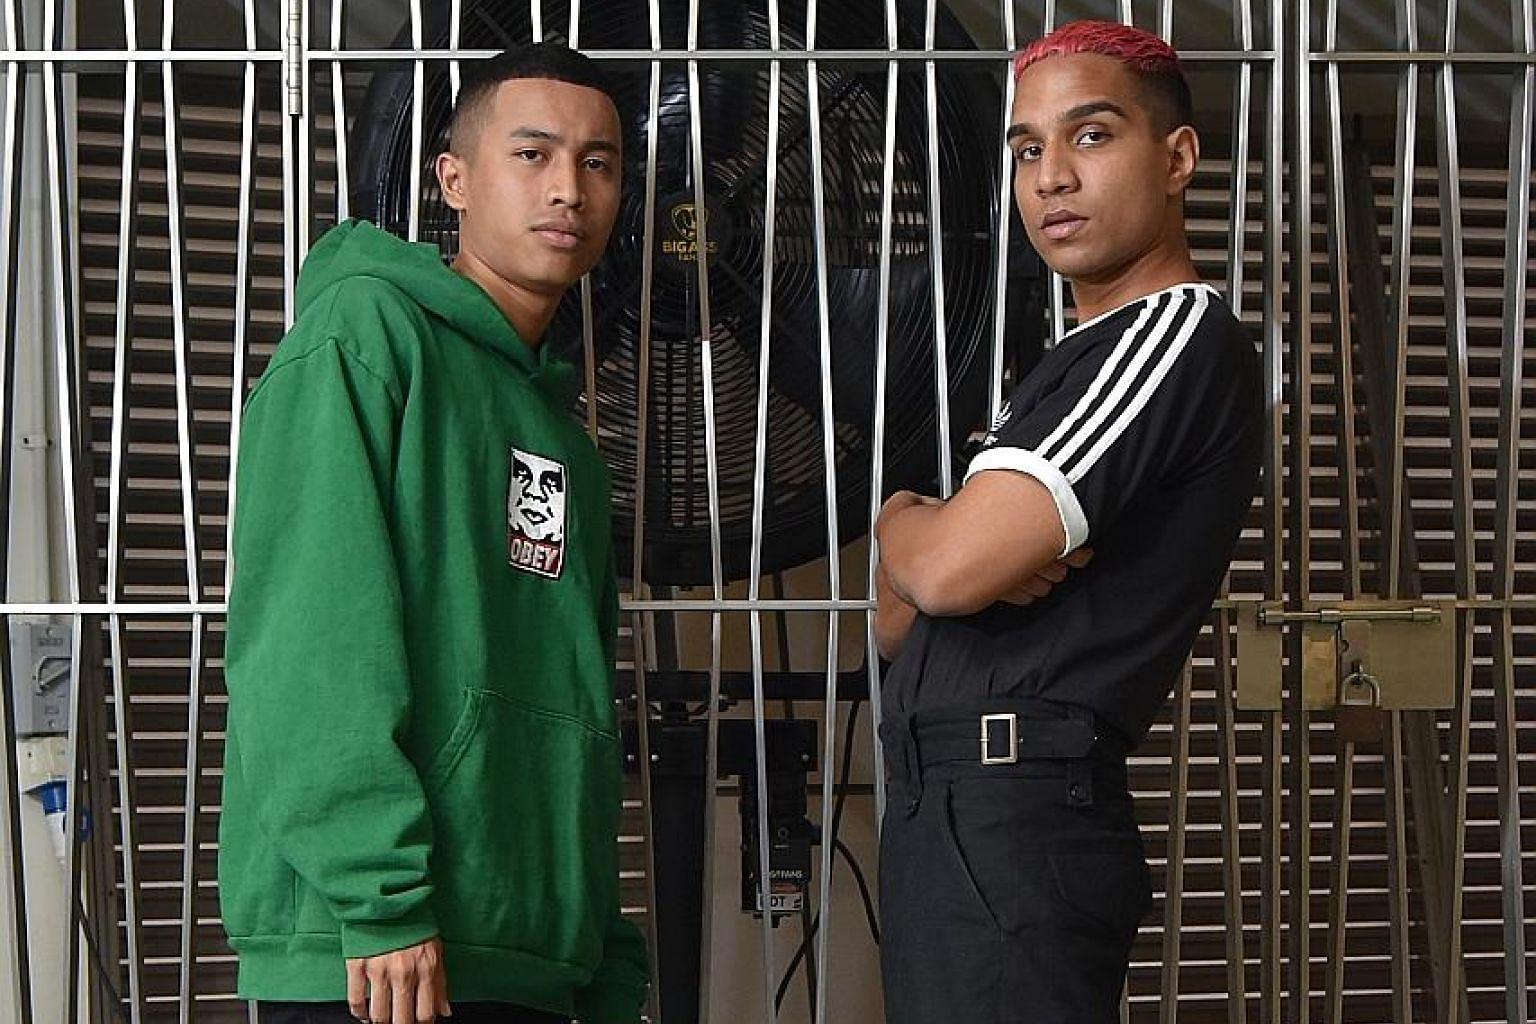 Singaporean rappers Fariz Jabba (far left) and Yung Raja are among the first rappers to perform at Baybeats.